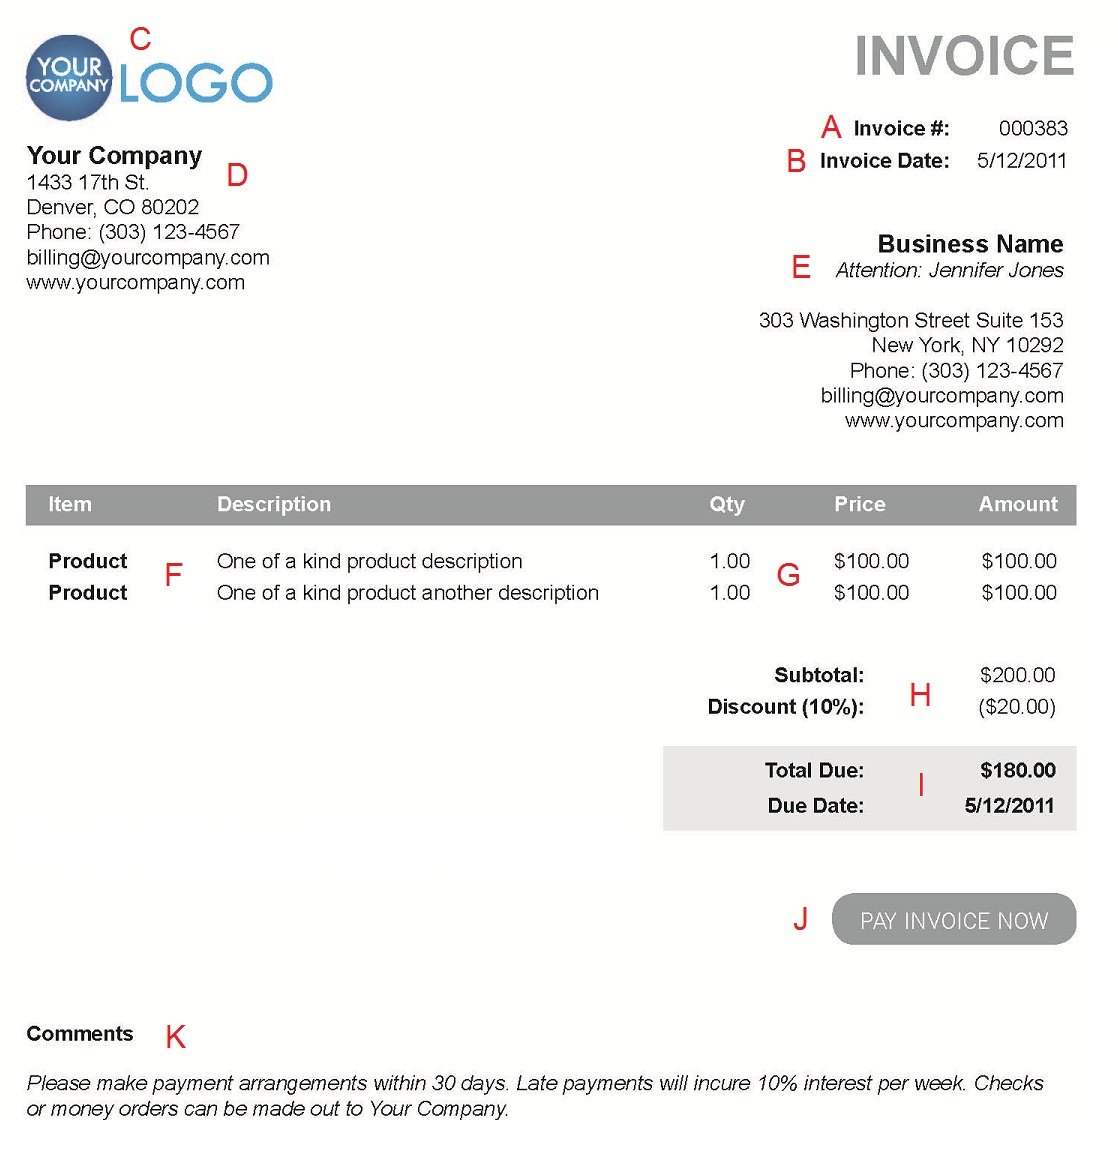 Imagerackus  Winning The  Different Sections Of An Electronic Payment Invoice With Gorgeous A  With Agreeable Receipt Lil Wayne Also Usps Return Receipt Fee In Addition Oil Change Receipts And Online Receipt Generator As Well As Free Rent Receipt Additionally Money Rent Receipt Book From Paysimplecom With Imagerackus  Gorgeous The  Different Sections Of An Electronic Payment Invoice With Agreeable A  And Winning Receipt Lil Wayne Also Usps Return Receipt Fee In Addition Oil Change Receipts From Paysimplecom